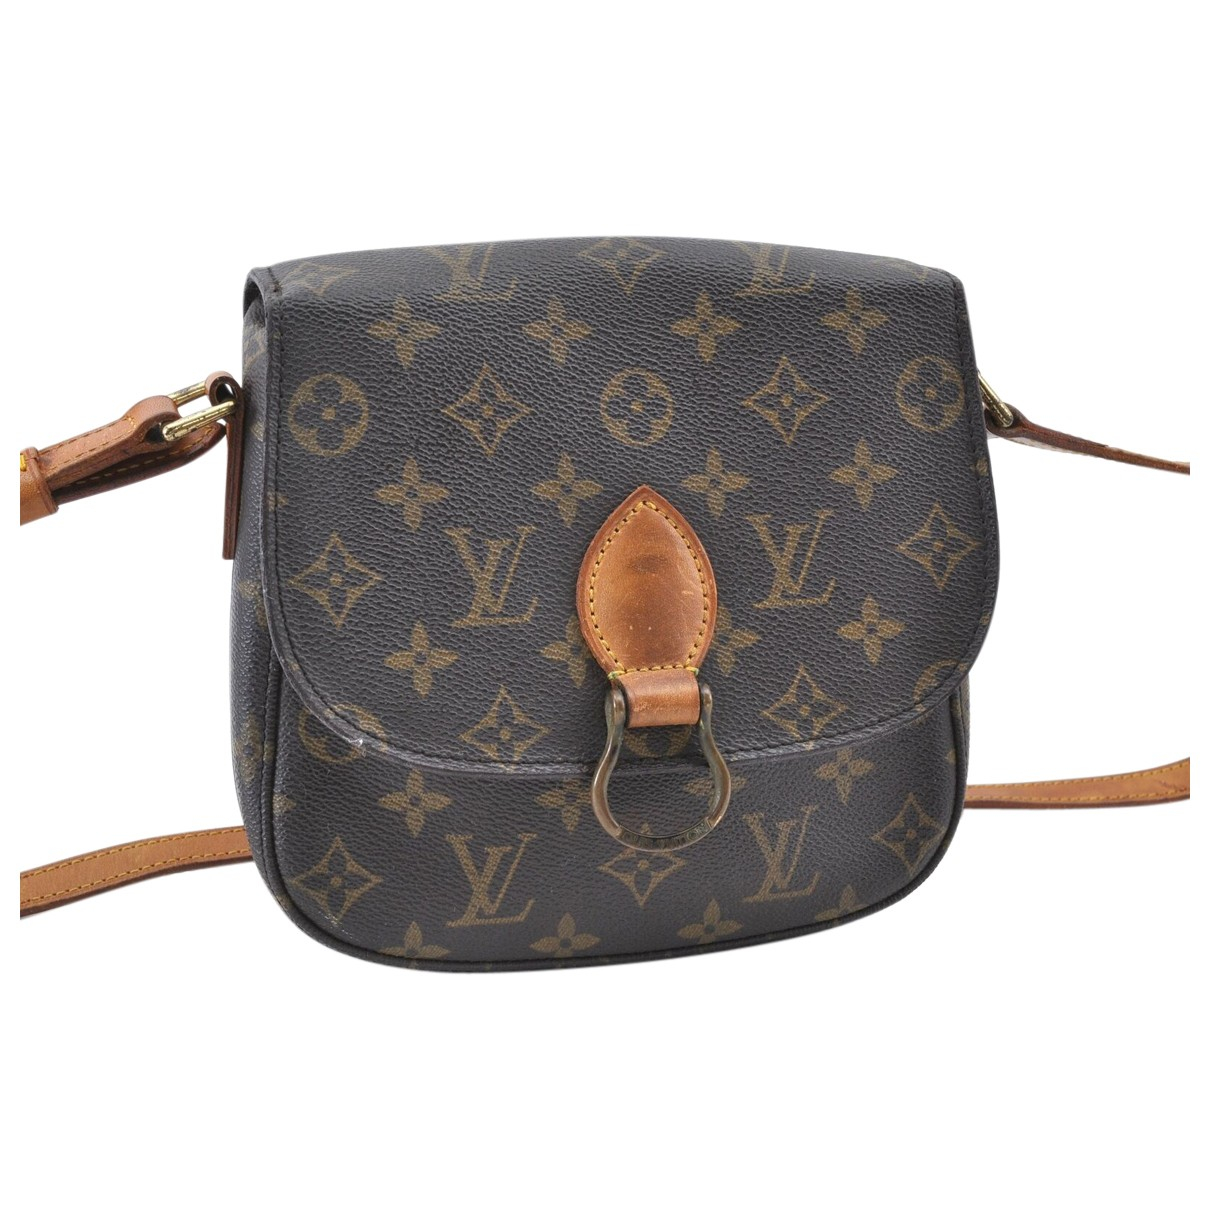 Louis Vuitton Saint Cloud Brown Cloth handbag for Women N